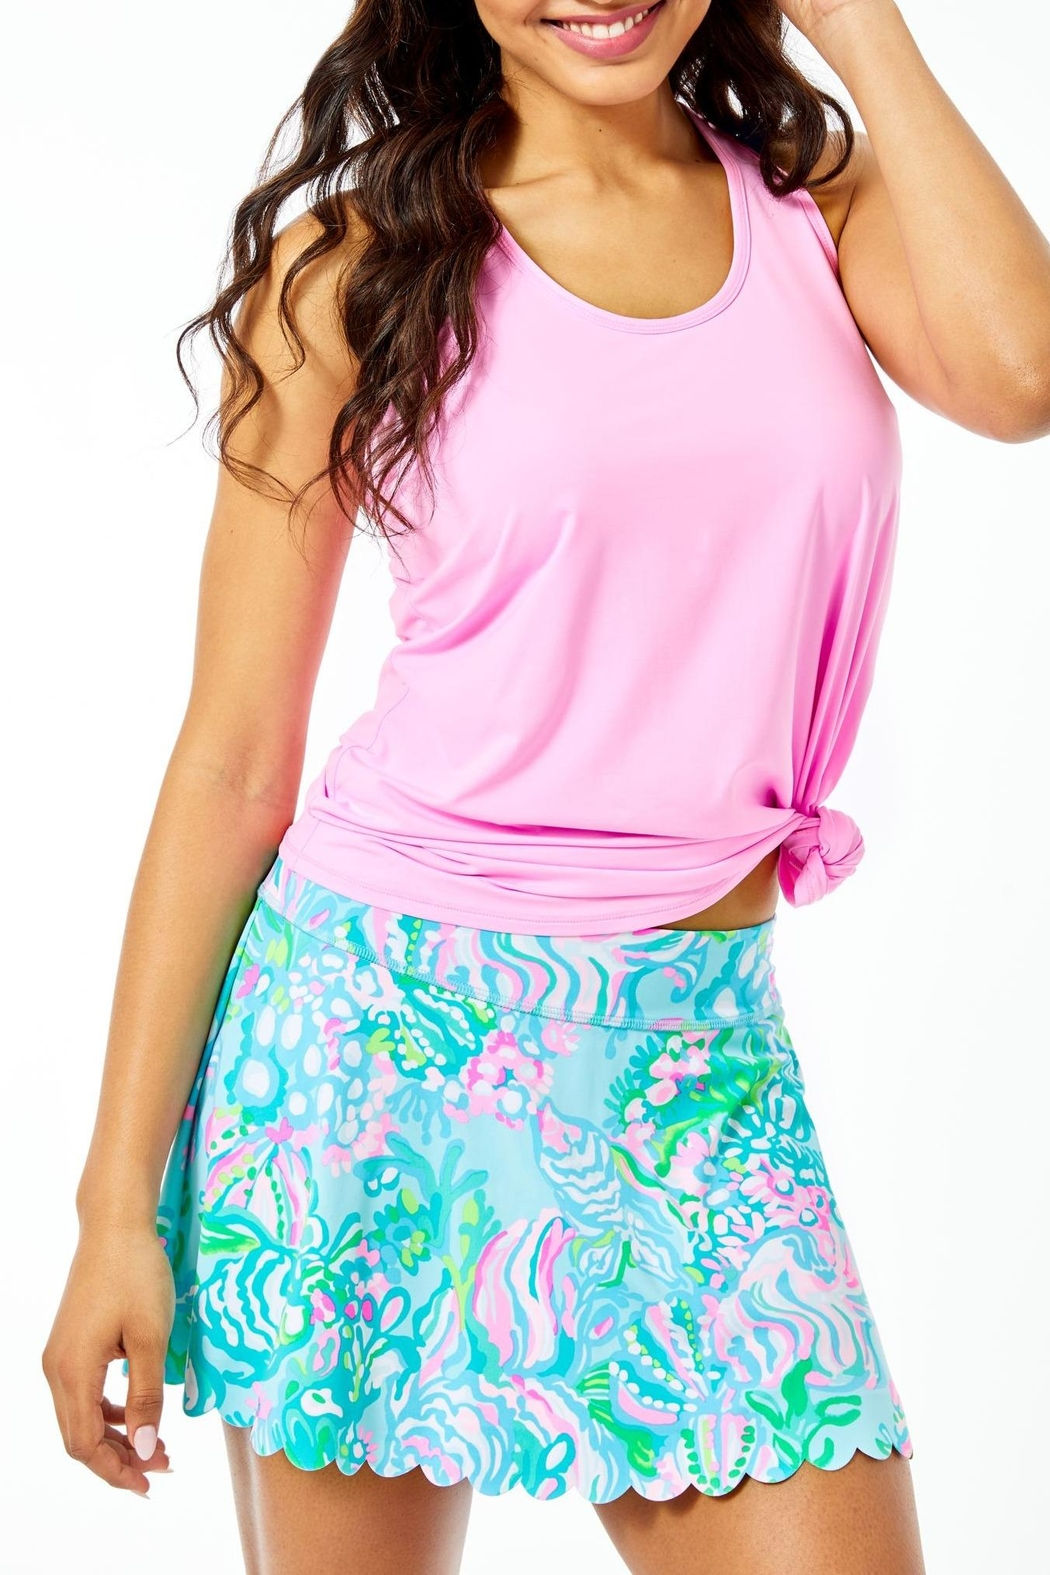 Lilly Pulitzer Luxletic Aila Scallop-Skort - Main Image